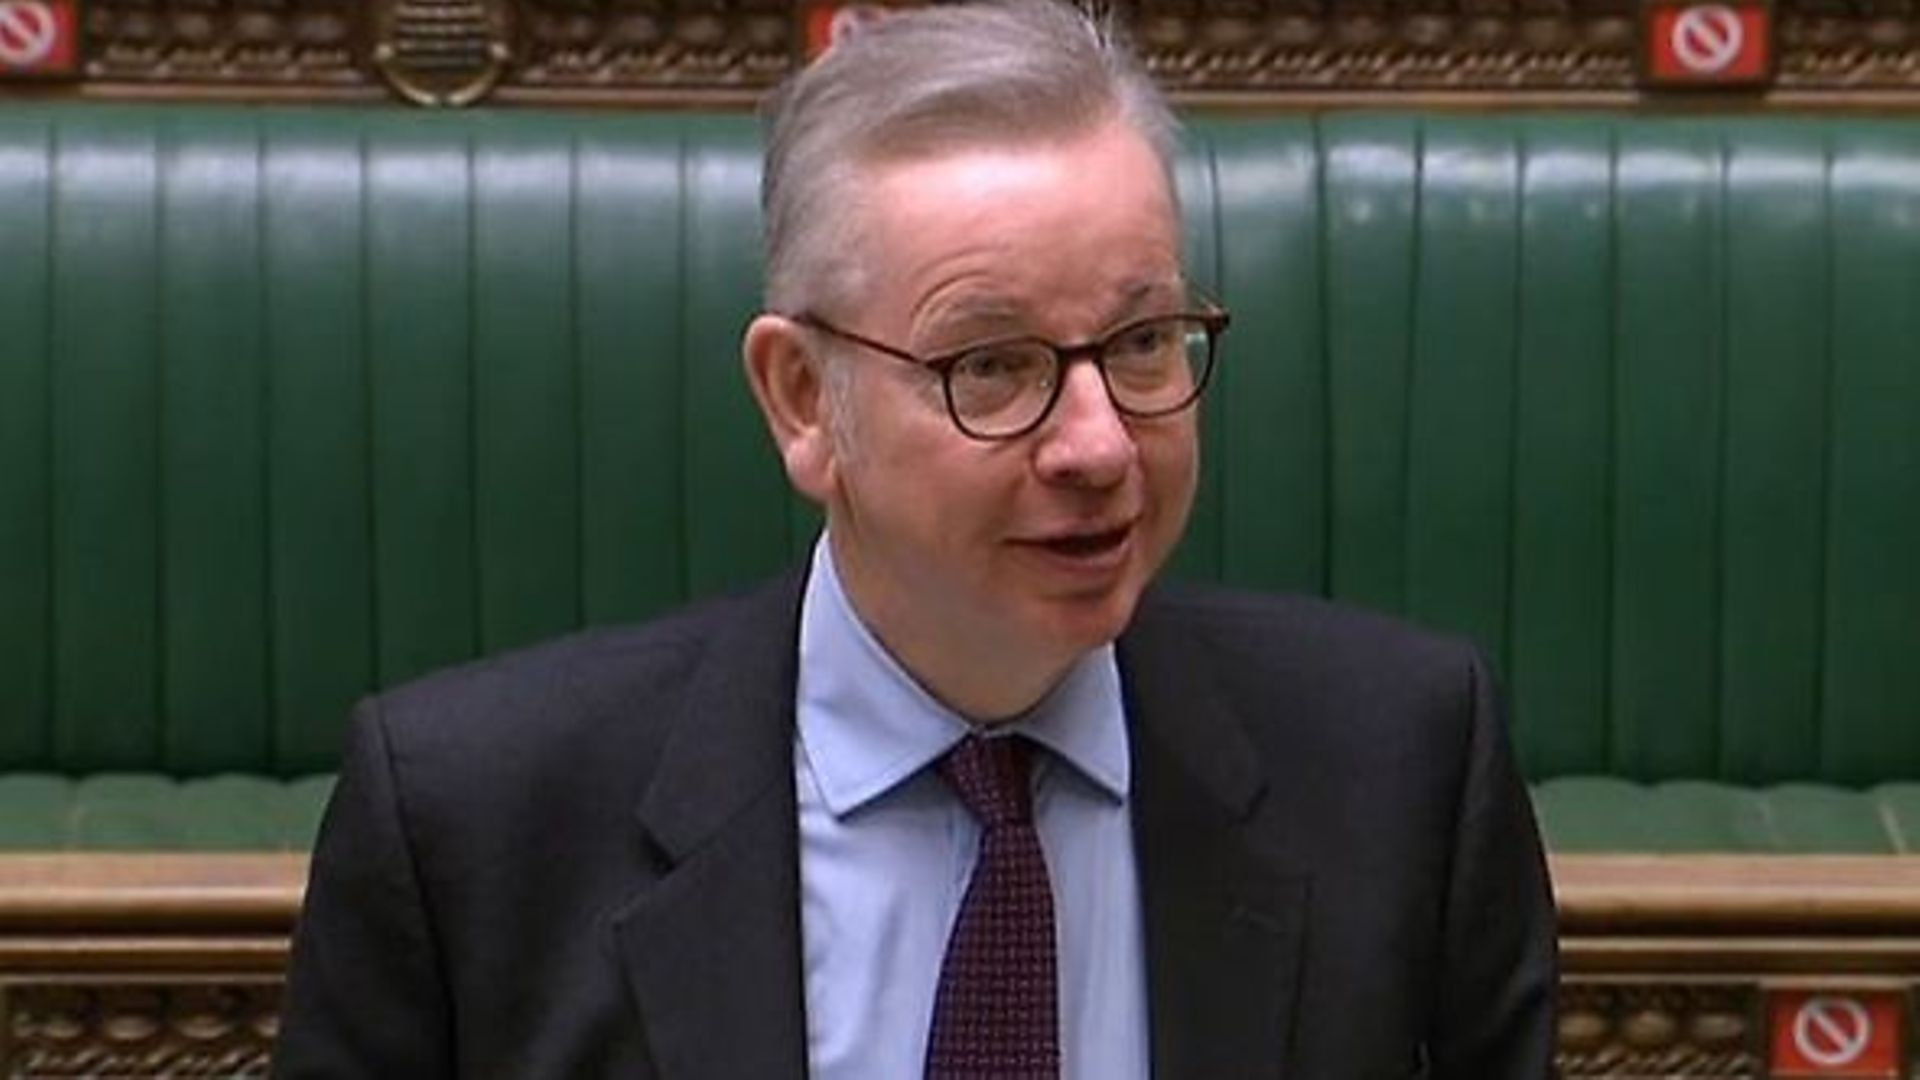 Michael Gove in the House of Commons - Credit: Parliament Live